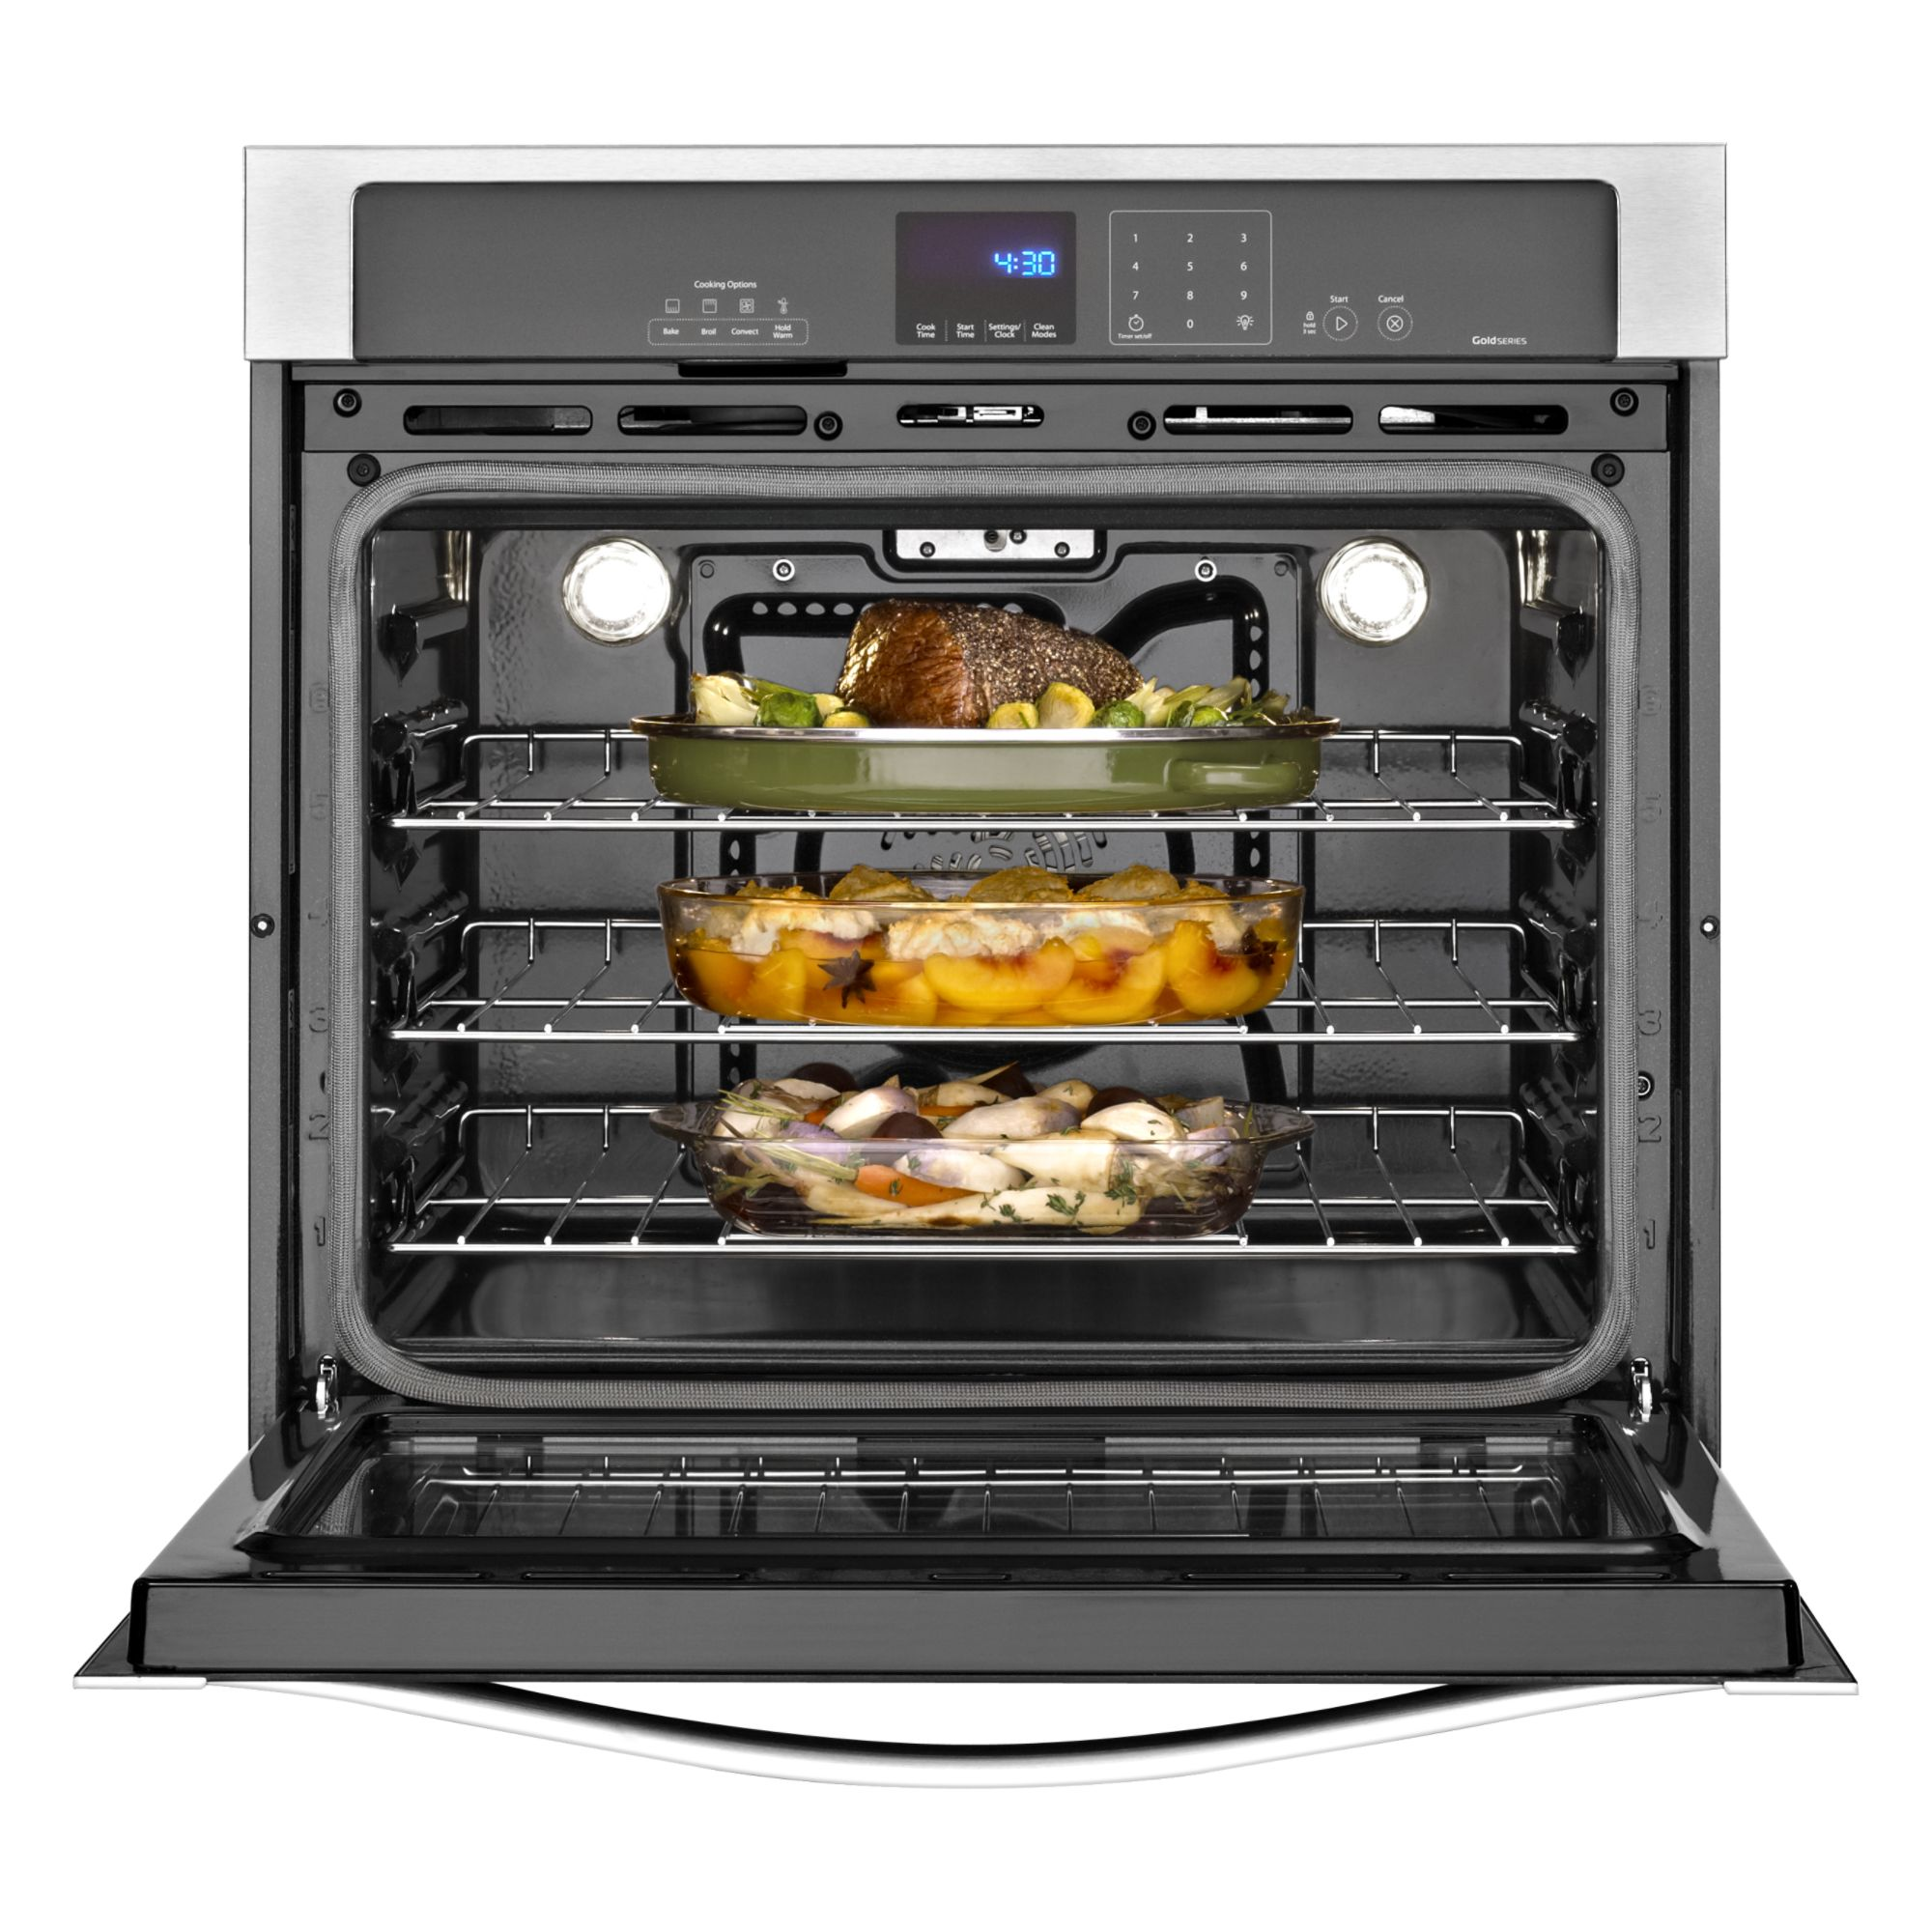 "Whirlpool Gold WOS92EC7AS 27"" Electric Wall Oven w/ TimeSavor™ Ultra True Convection - Stainless Steel"